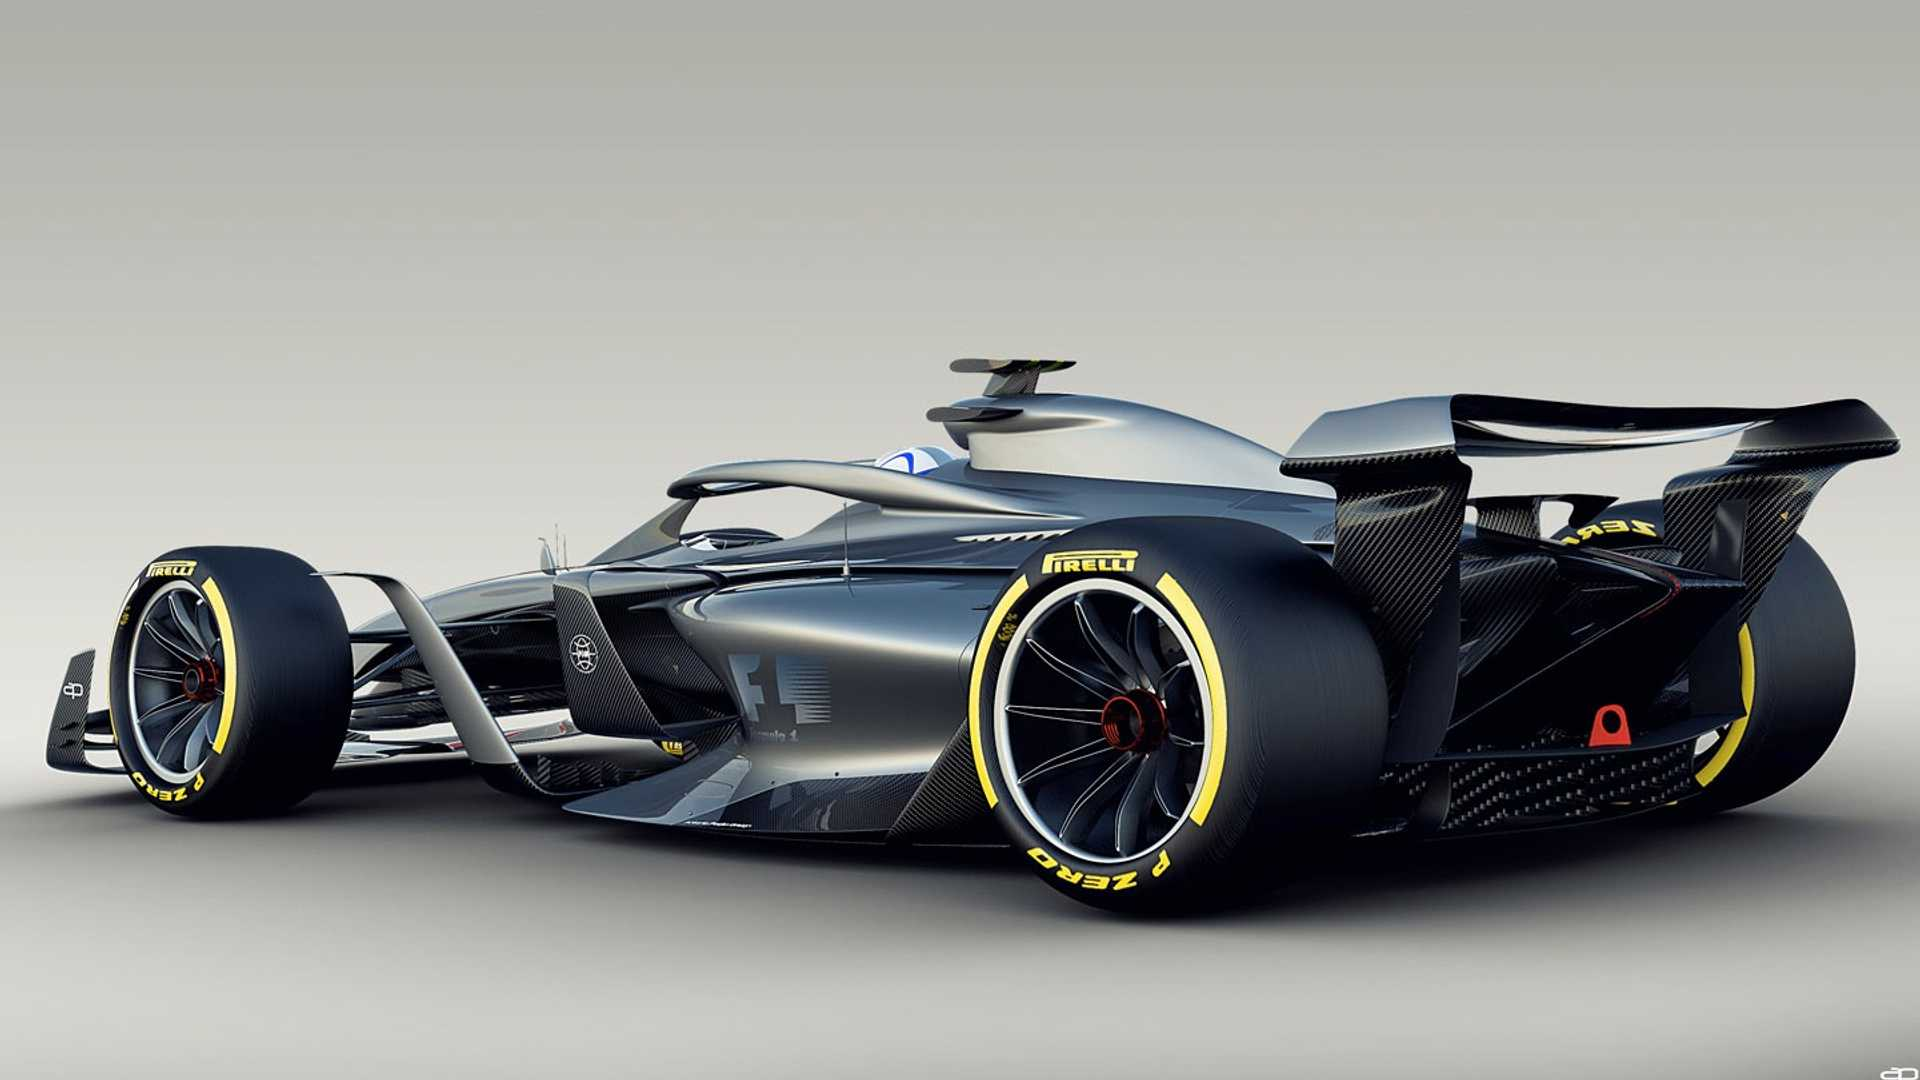 2021 Formula 1 concept claimed to produce five times less dirty air 1920x1080